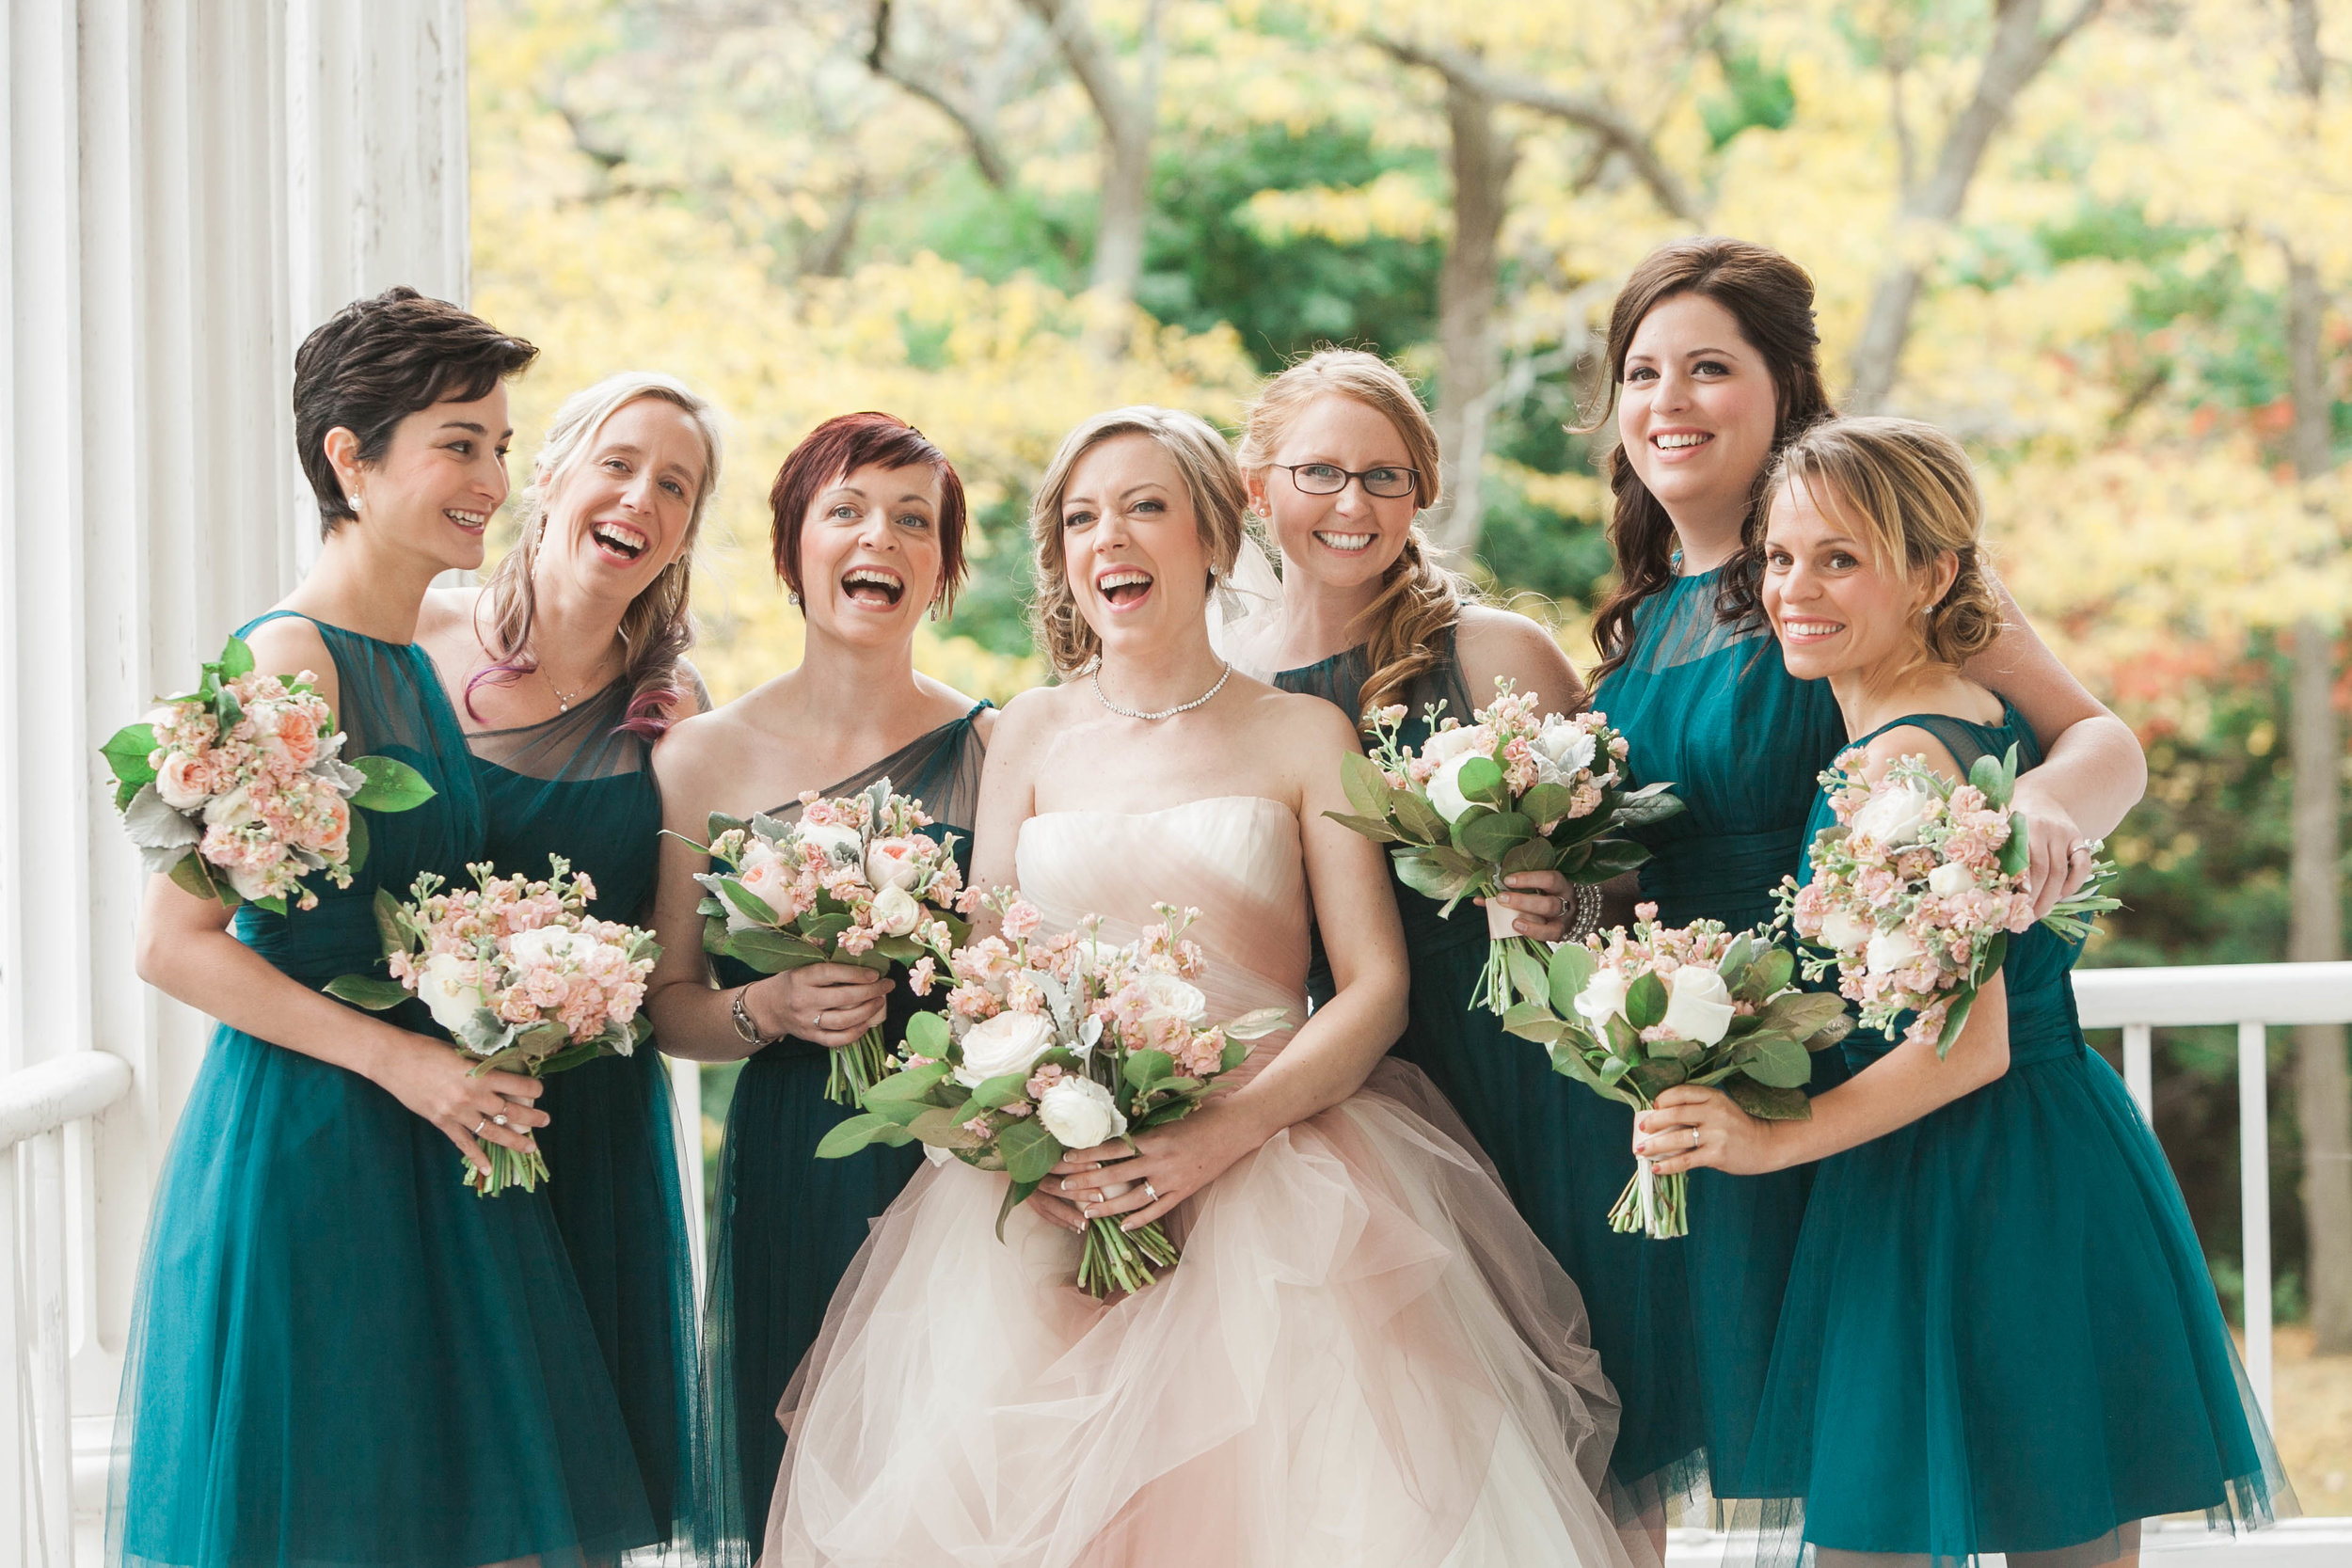 Bridesmaids photo at Willowbank Estate